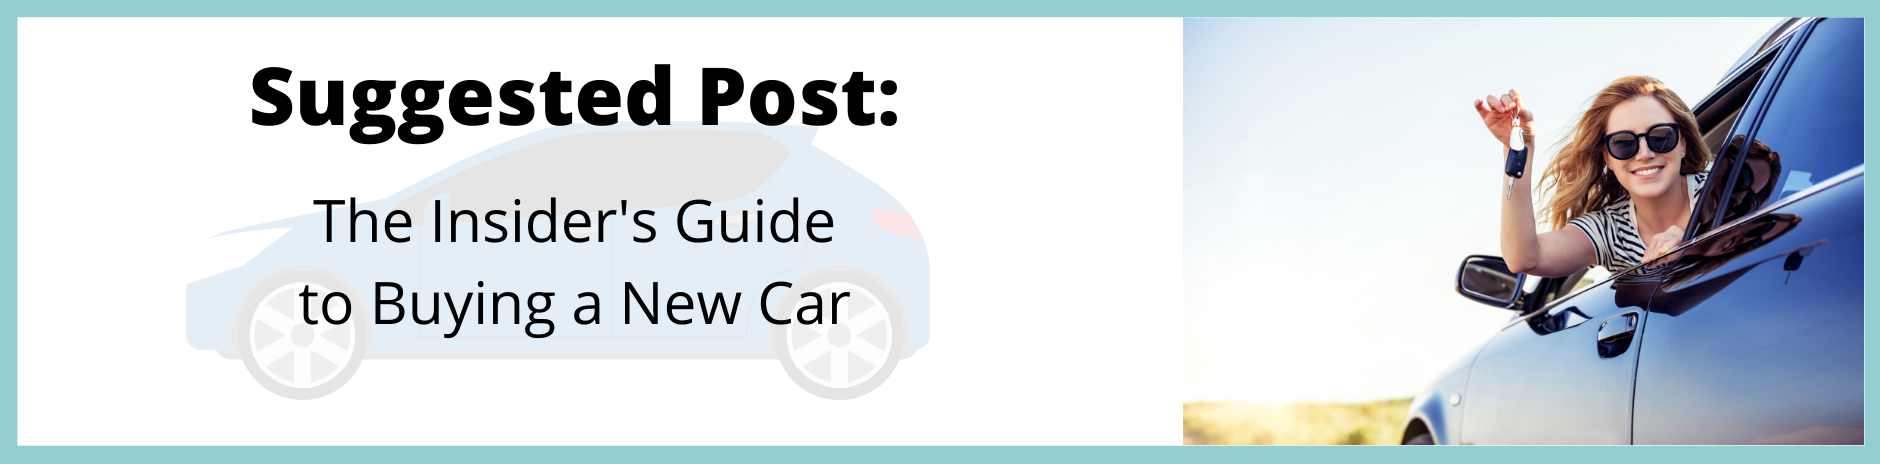 car buying guide banner